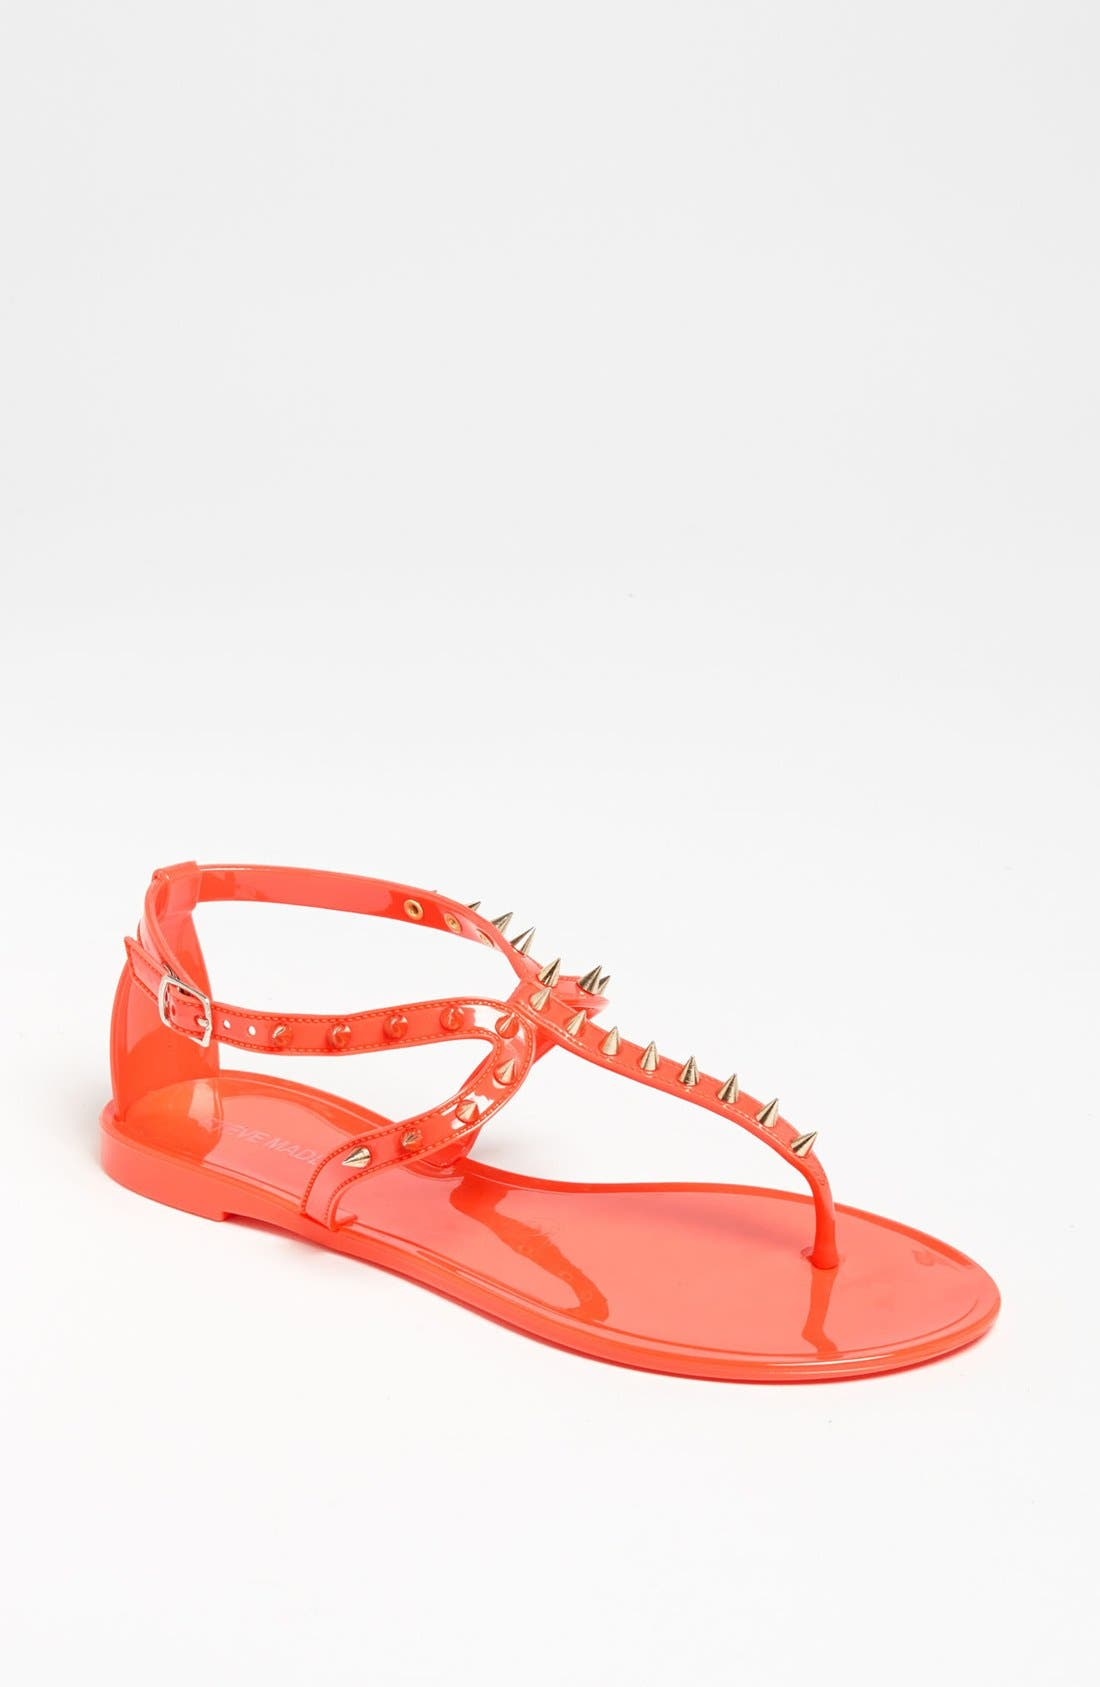 Alternate Image 1 Selected - Steve Madden 'Jelybely' Spike Sandal